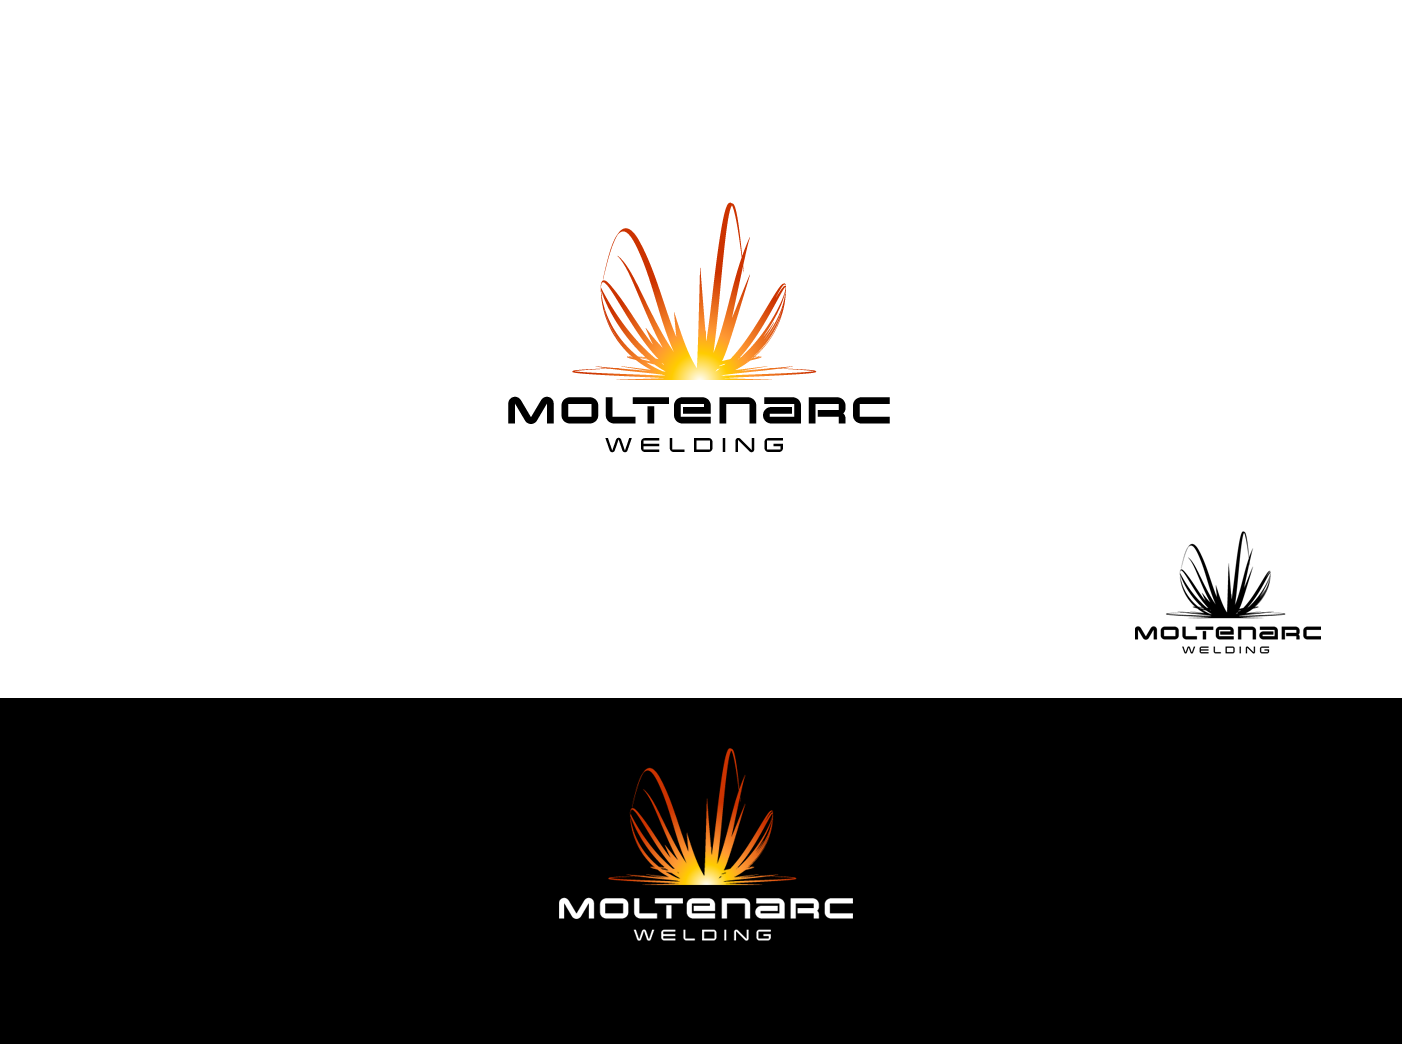 MOLTENARC Welding needs a new logo